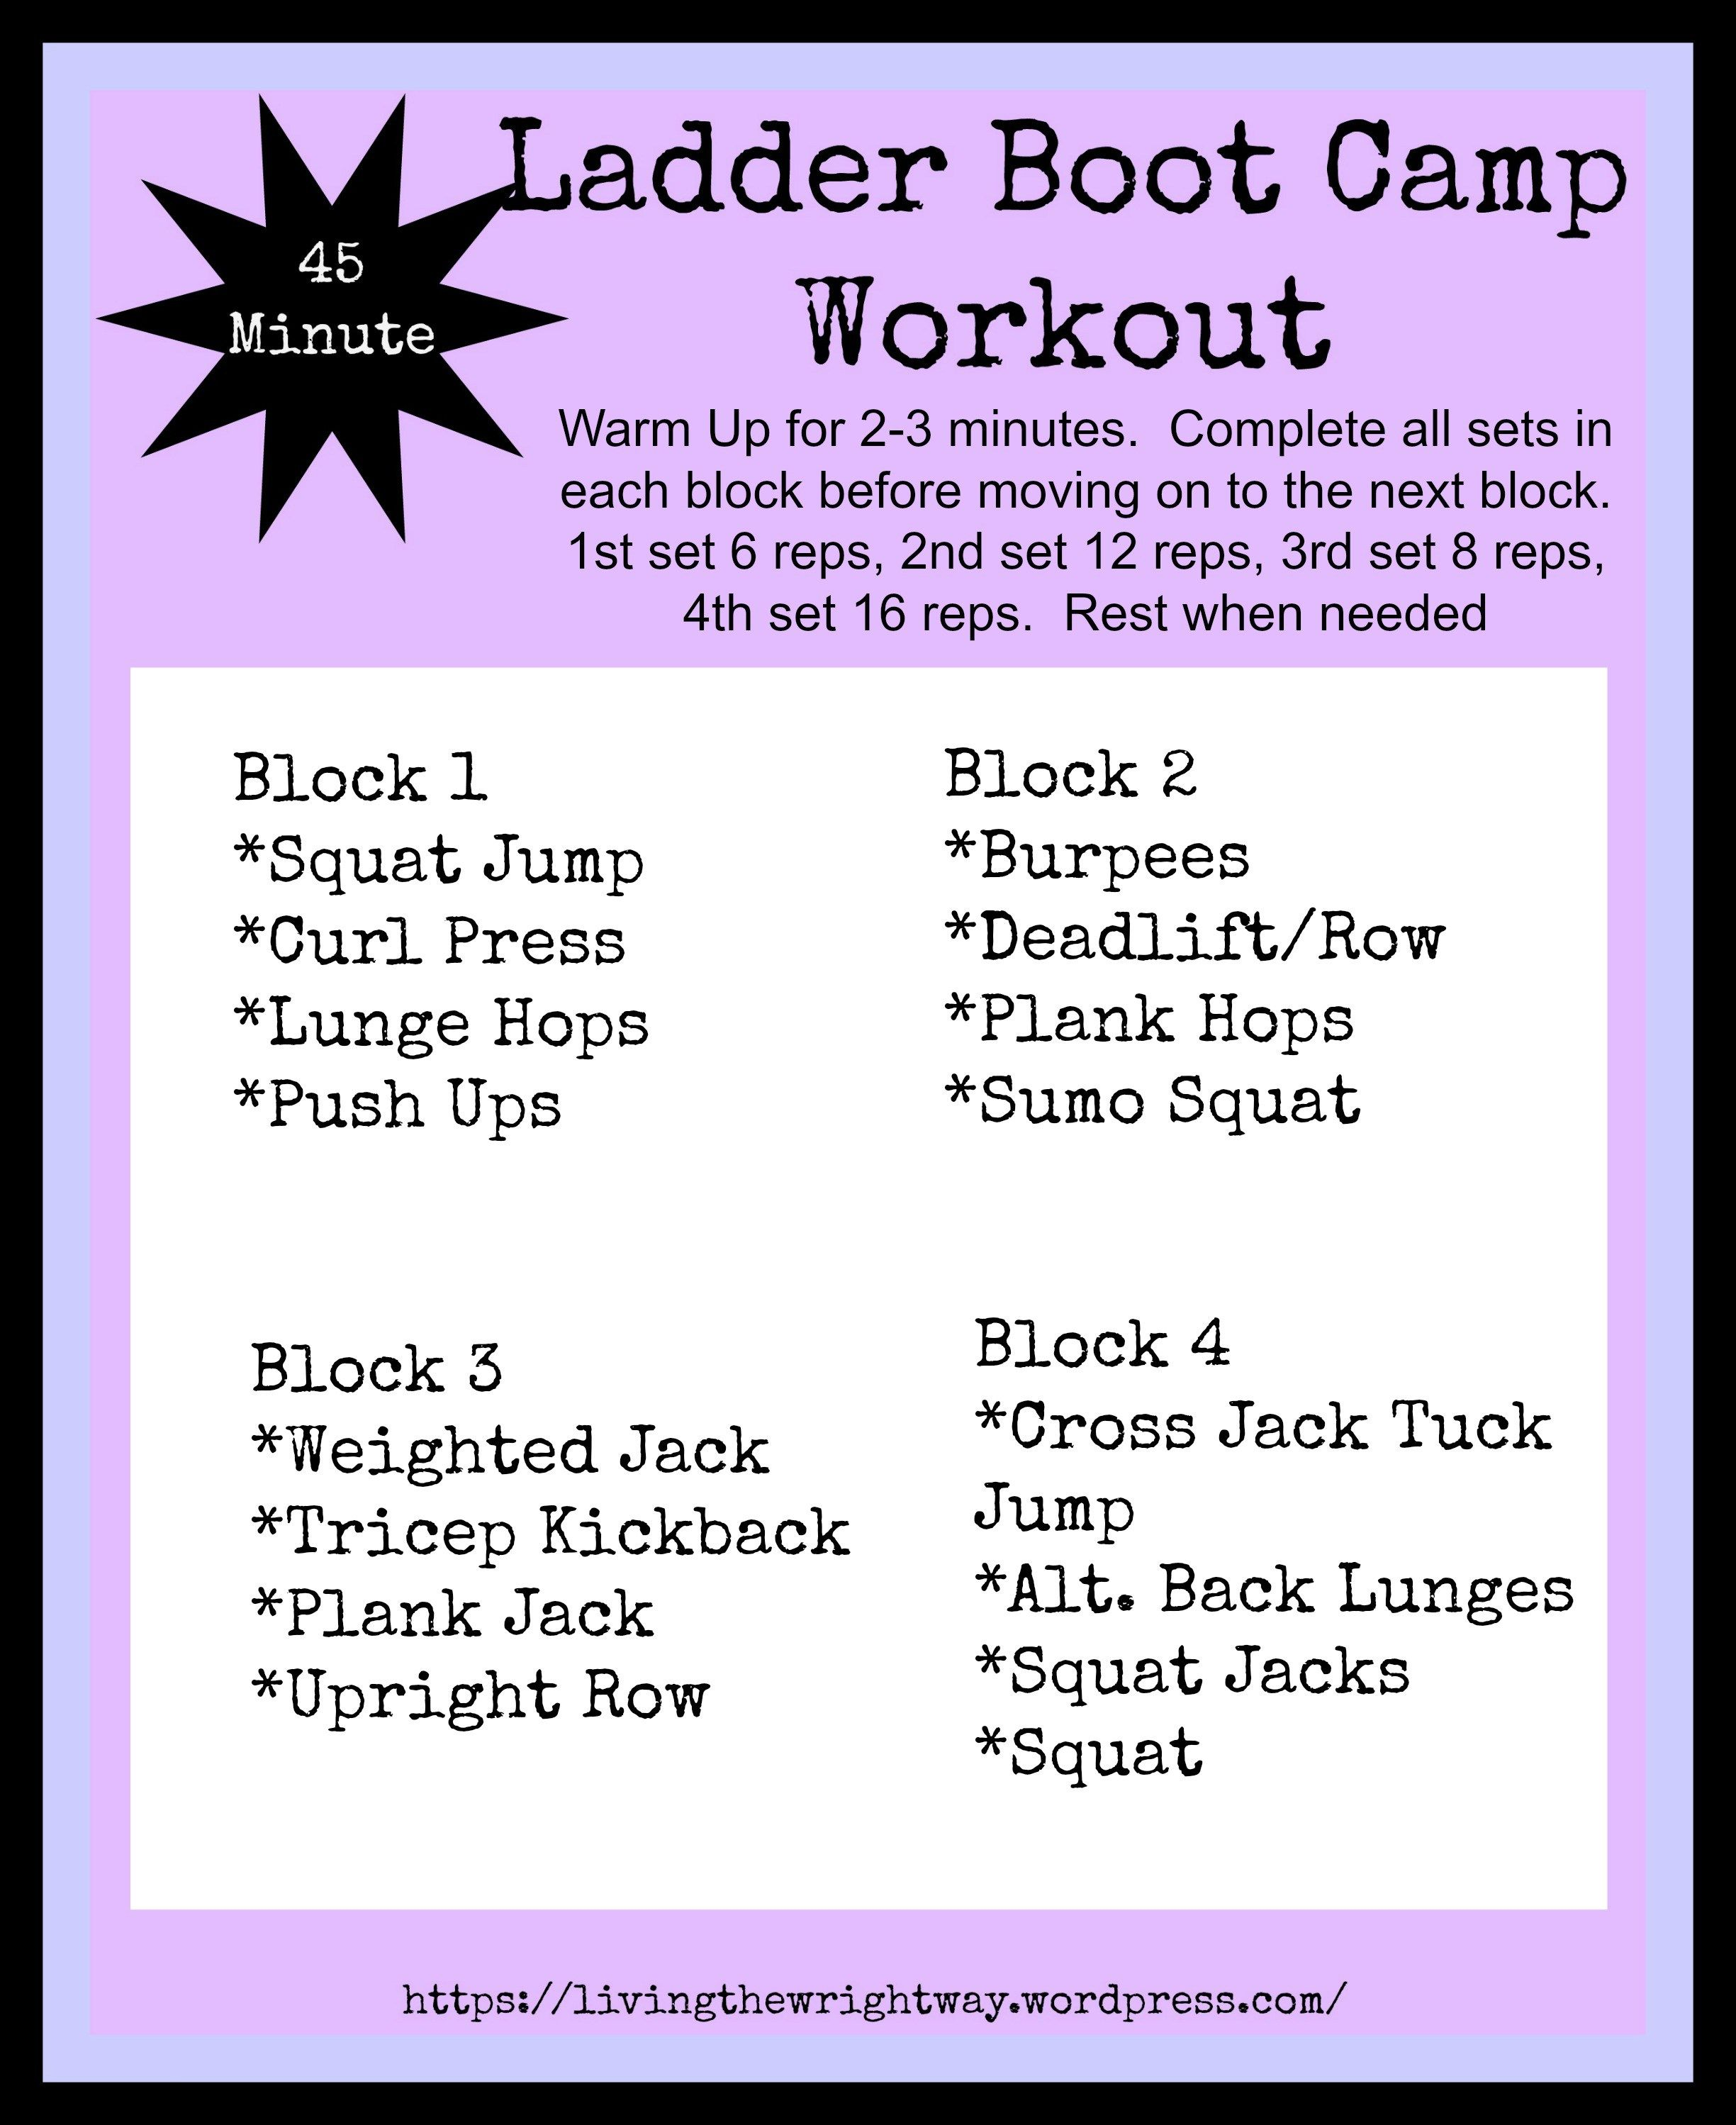 Ladder Boot Camp Workout